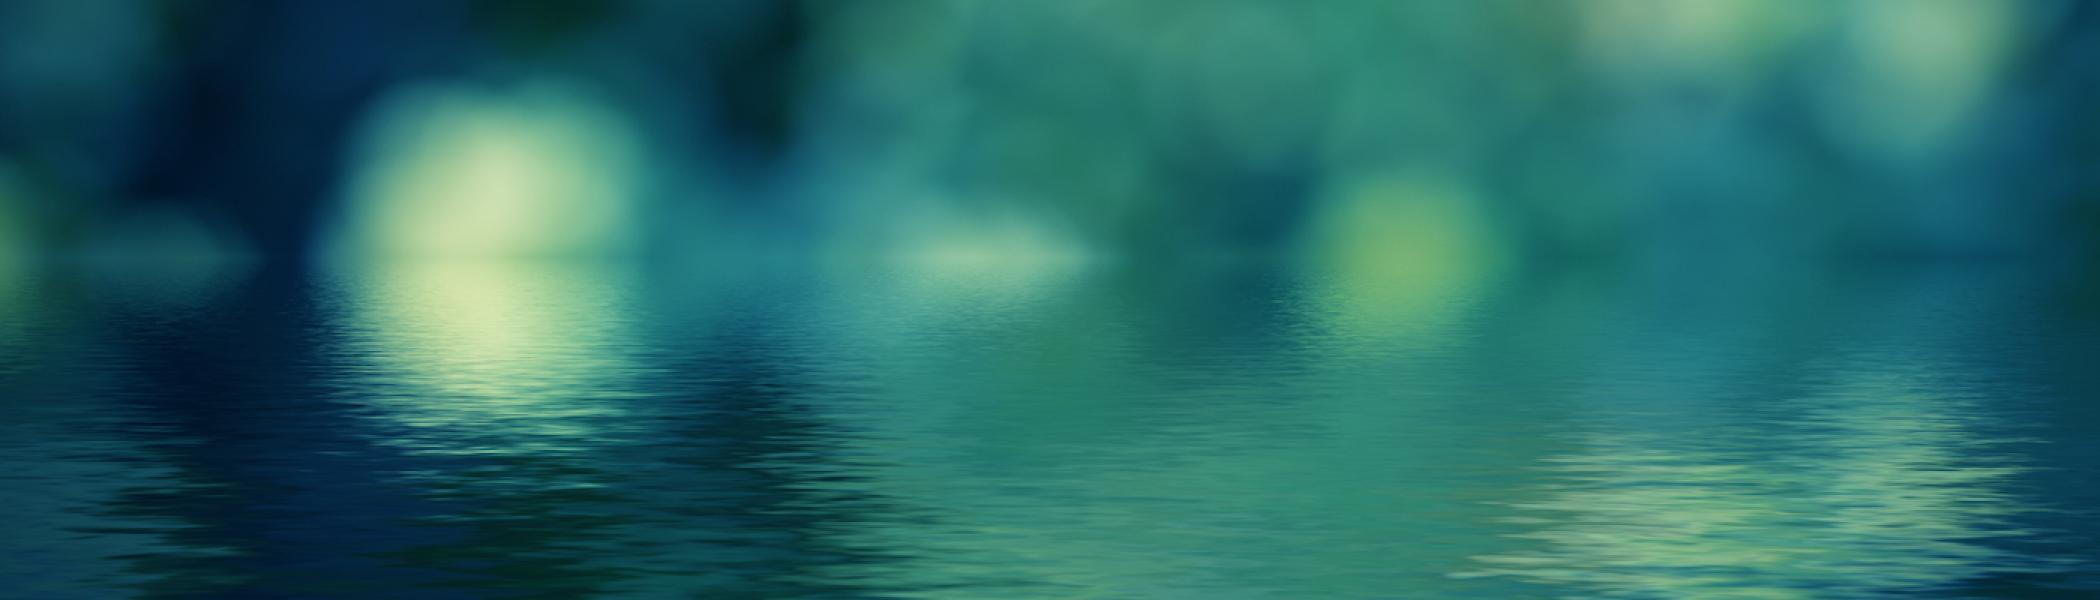 Water with light reflecting in blue tones